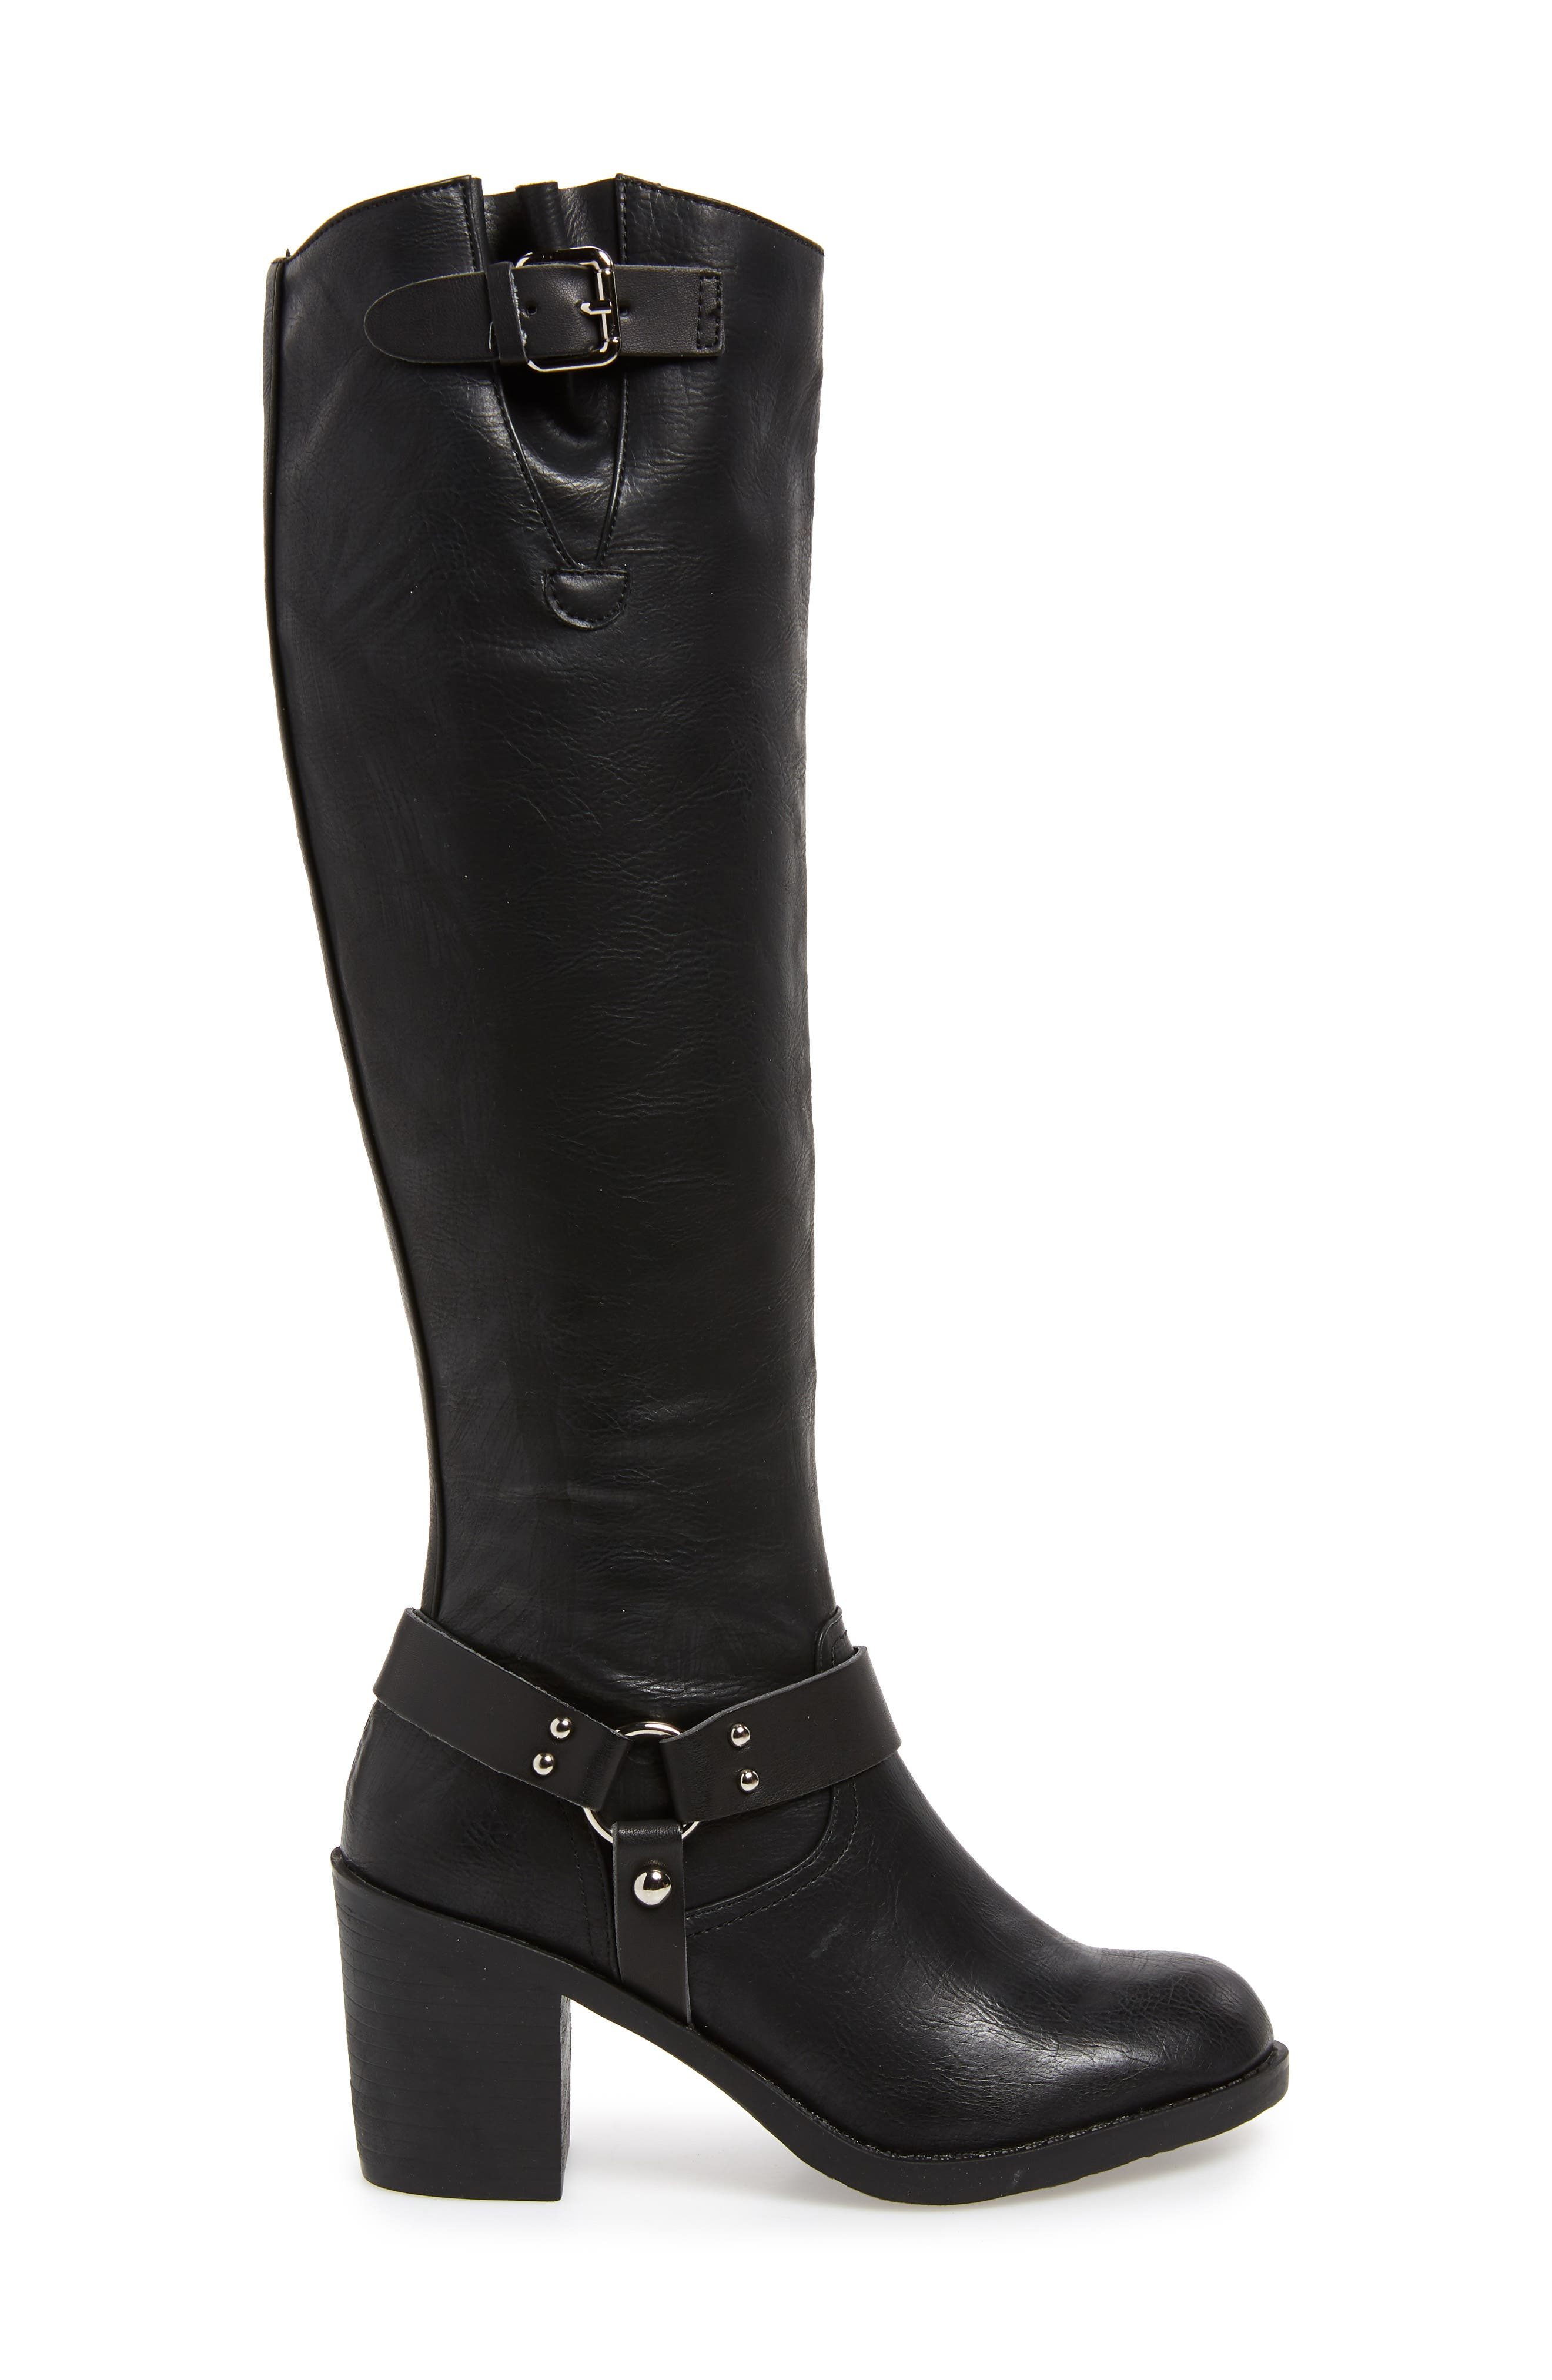 SBICCA, Dimarco Knee High Boot, Alternate thumbnail 3, color, BLACK FAUX LEATHER